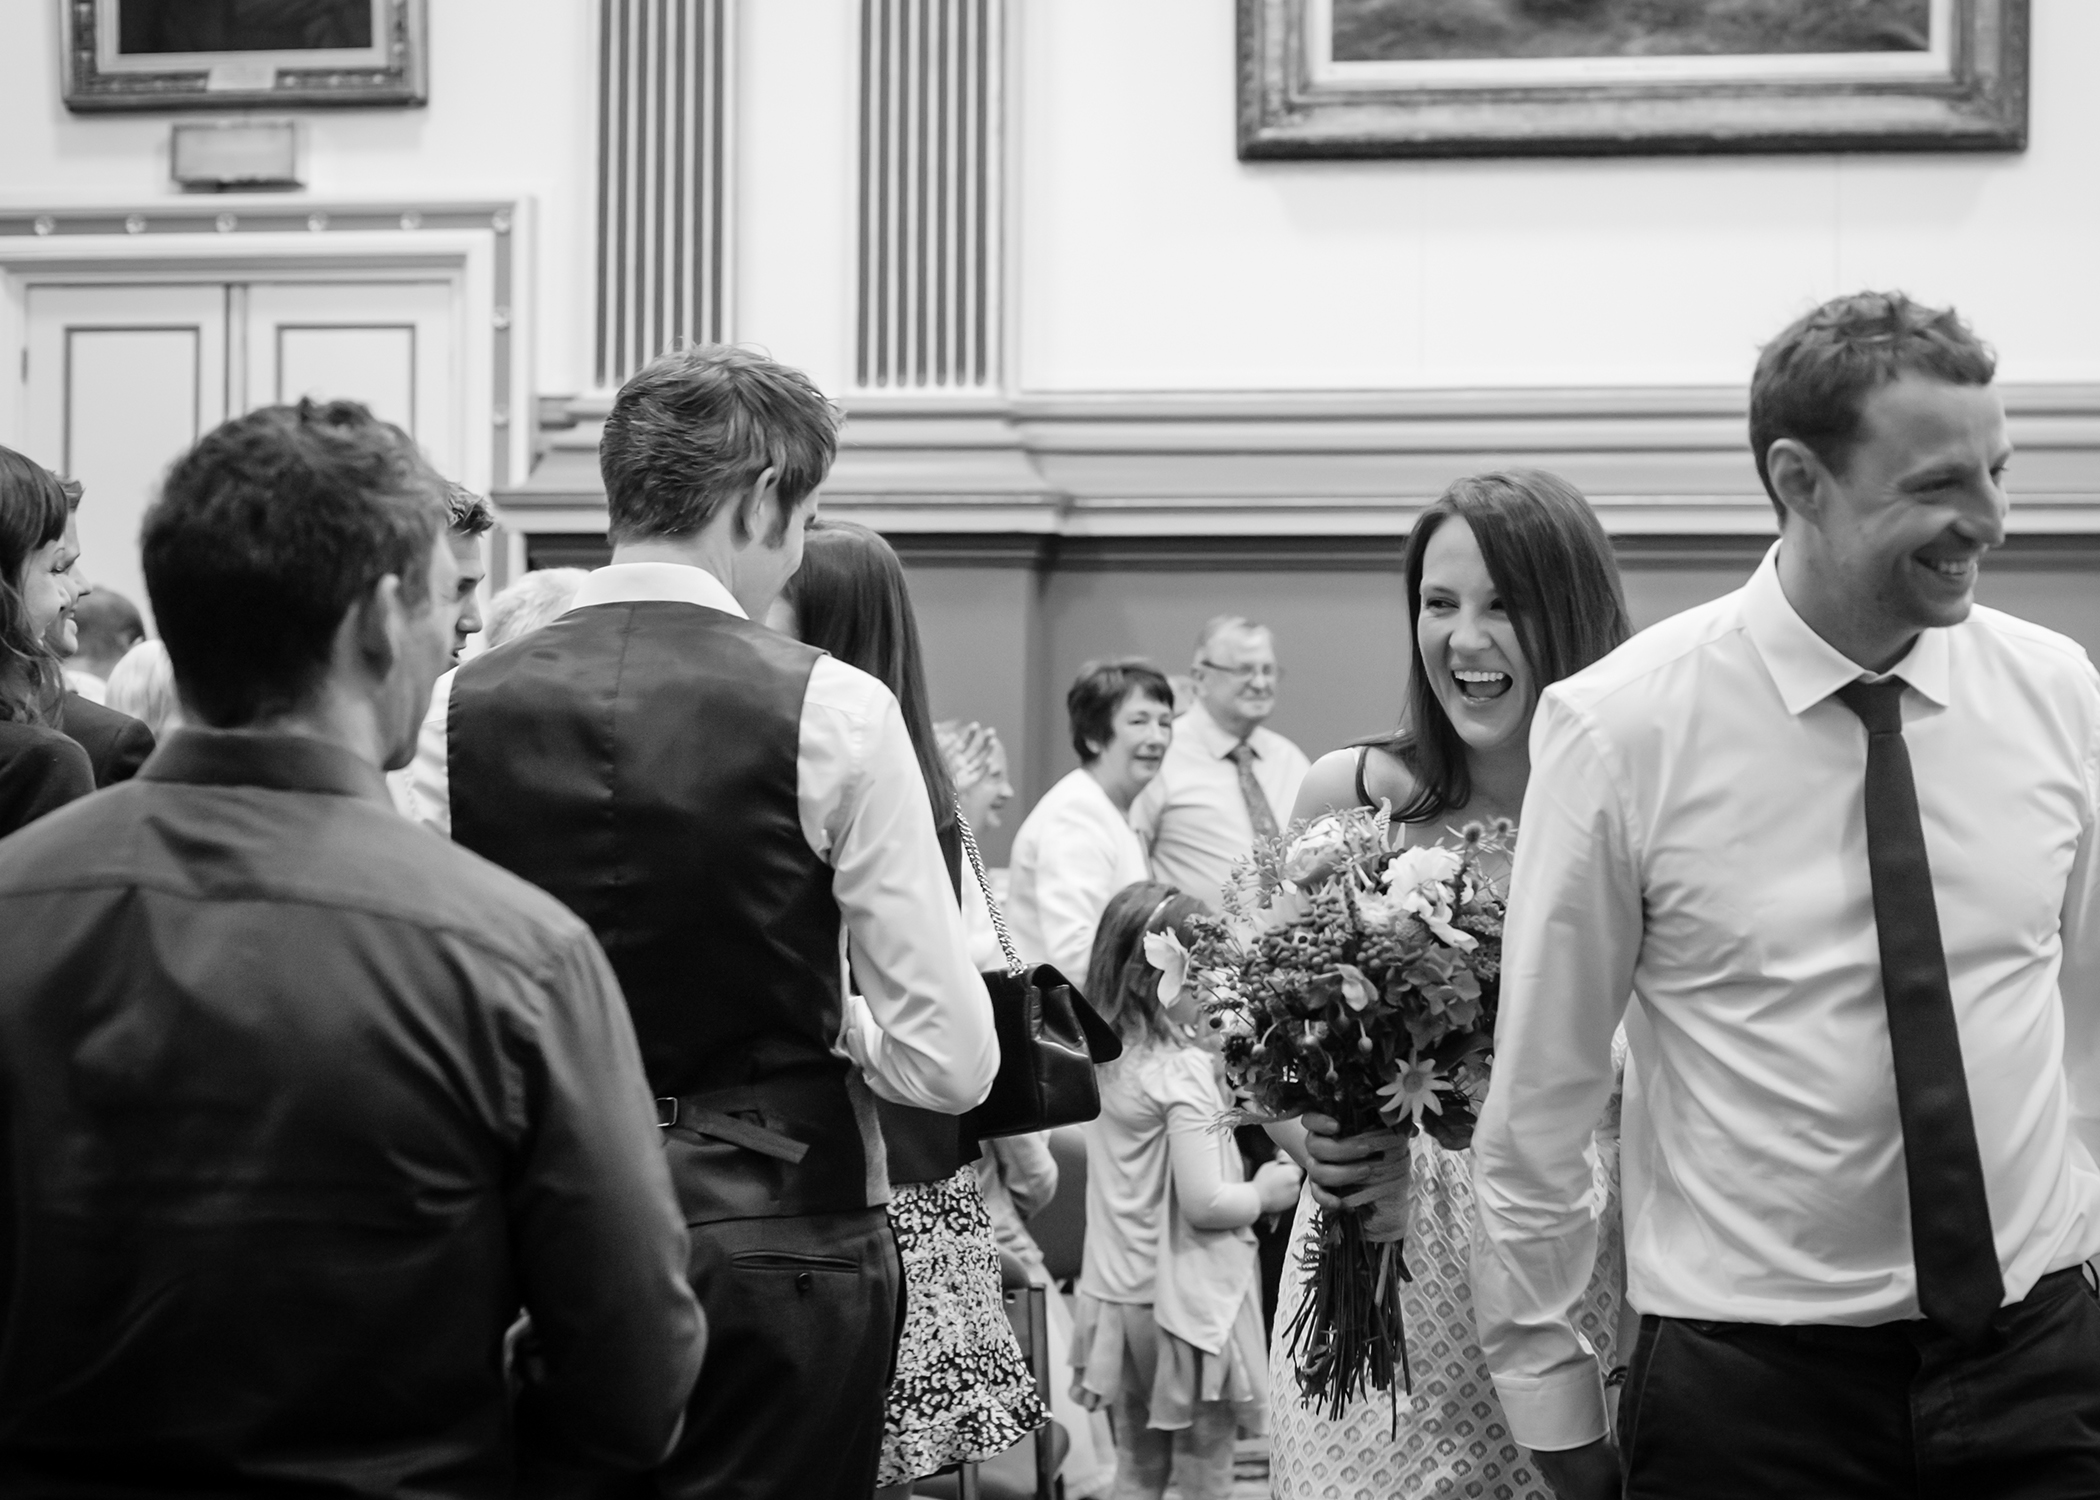 Documentary style wedding photography by photographers at Ripe Photography in the U.K.